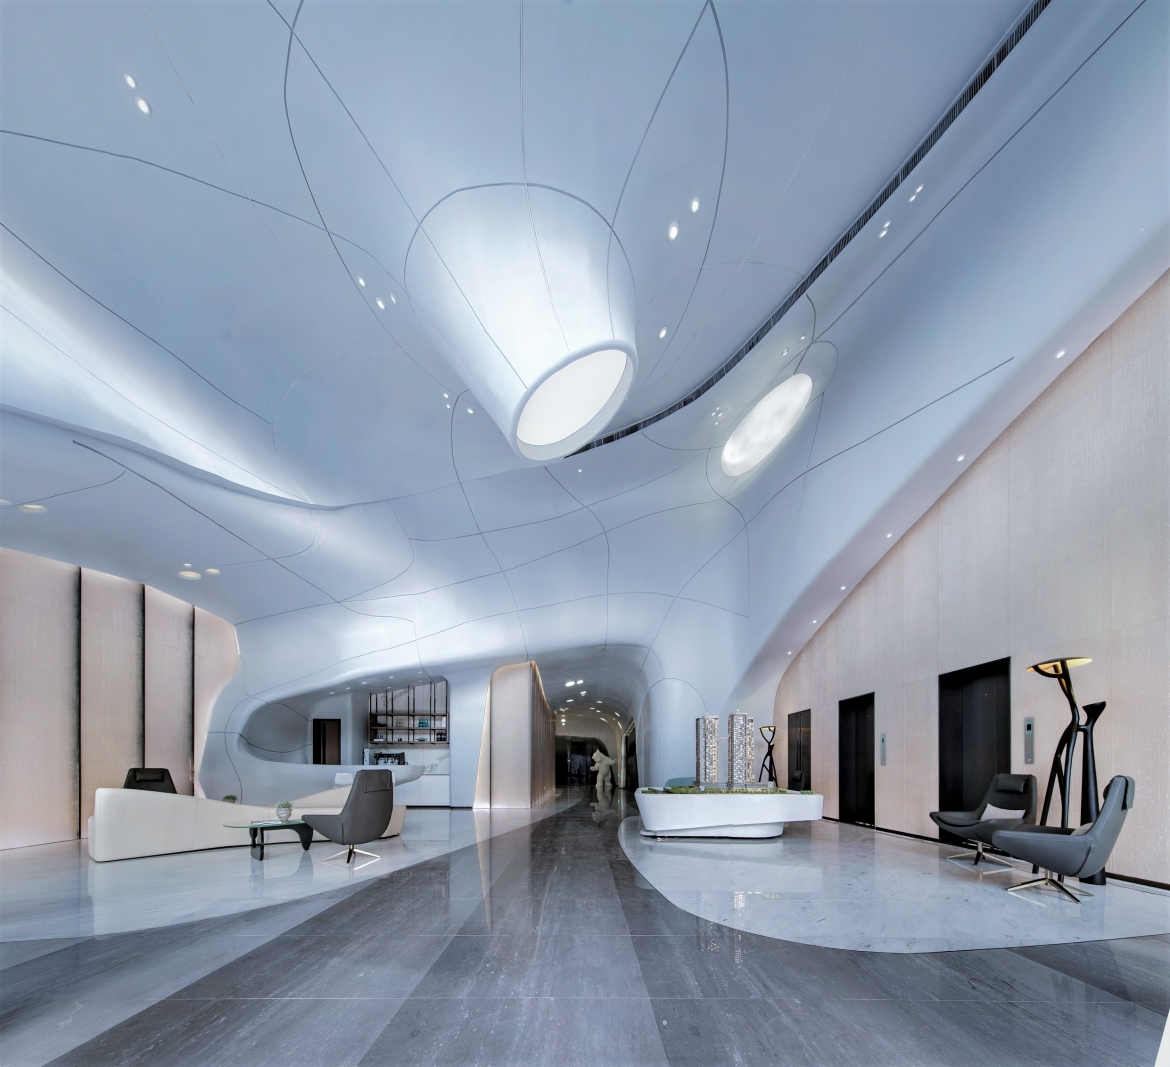 YUN XI TING EXHIBITION AND COMMERCIAL CENTER OPENED IN SHENZHEN